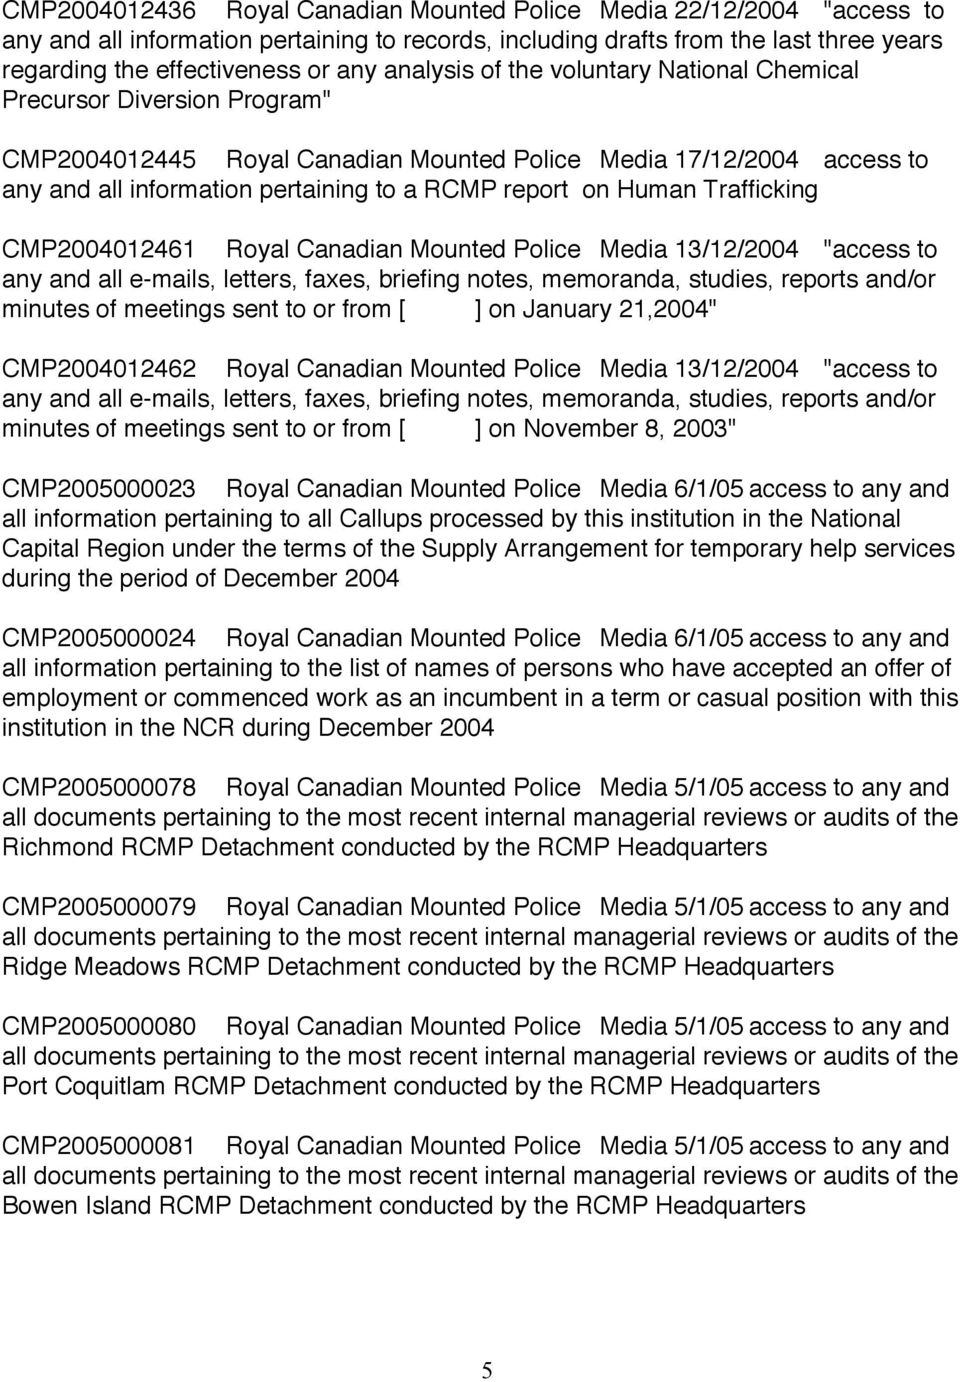 "Human Trafficking CMP2004012461 Royal Canadian Mounted Police Media 13/12/2004 ""access to any and all e-mails, letters, faxes, briefing notes, memoranda, studies, reports and/or minutes of meetings"